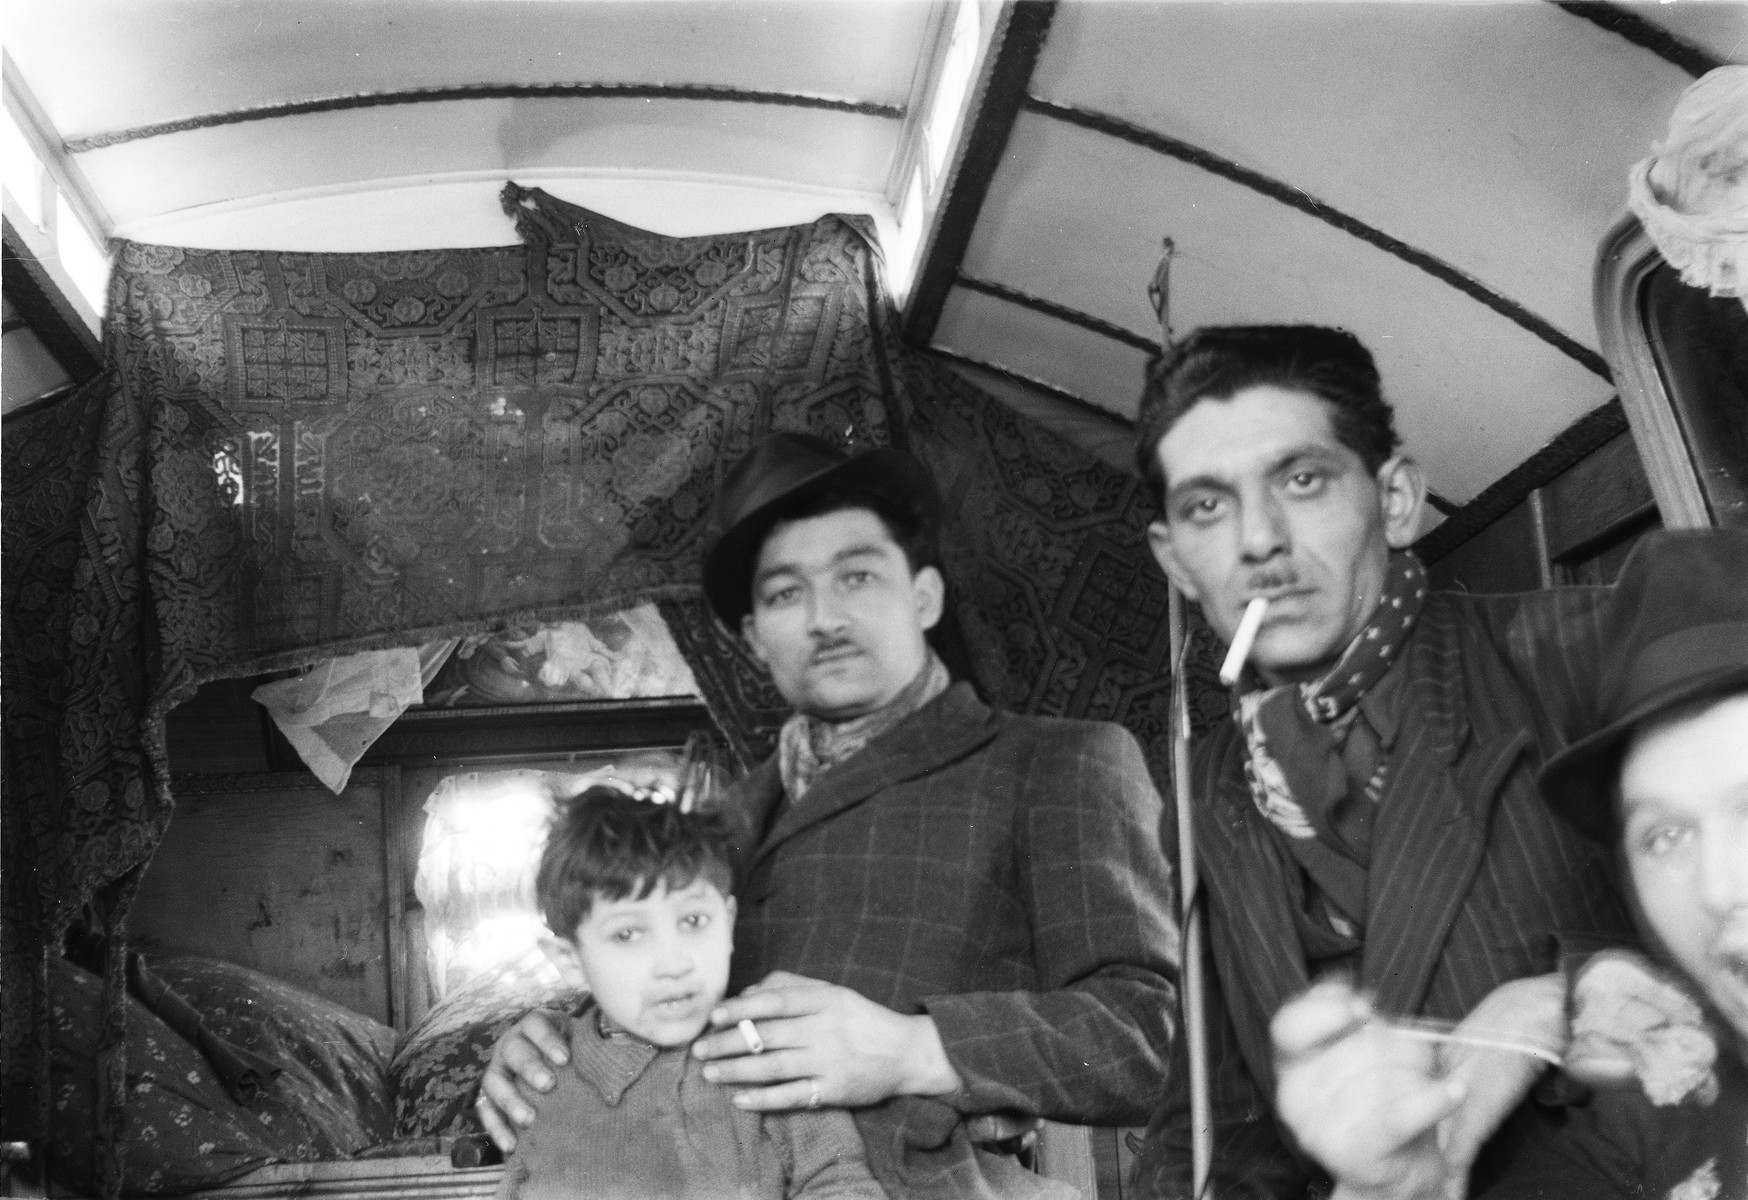 A Romani (Gypsy) family poses inside their caravan.